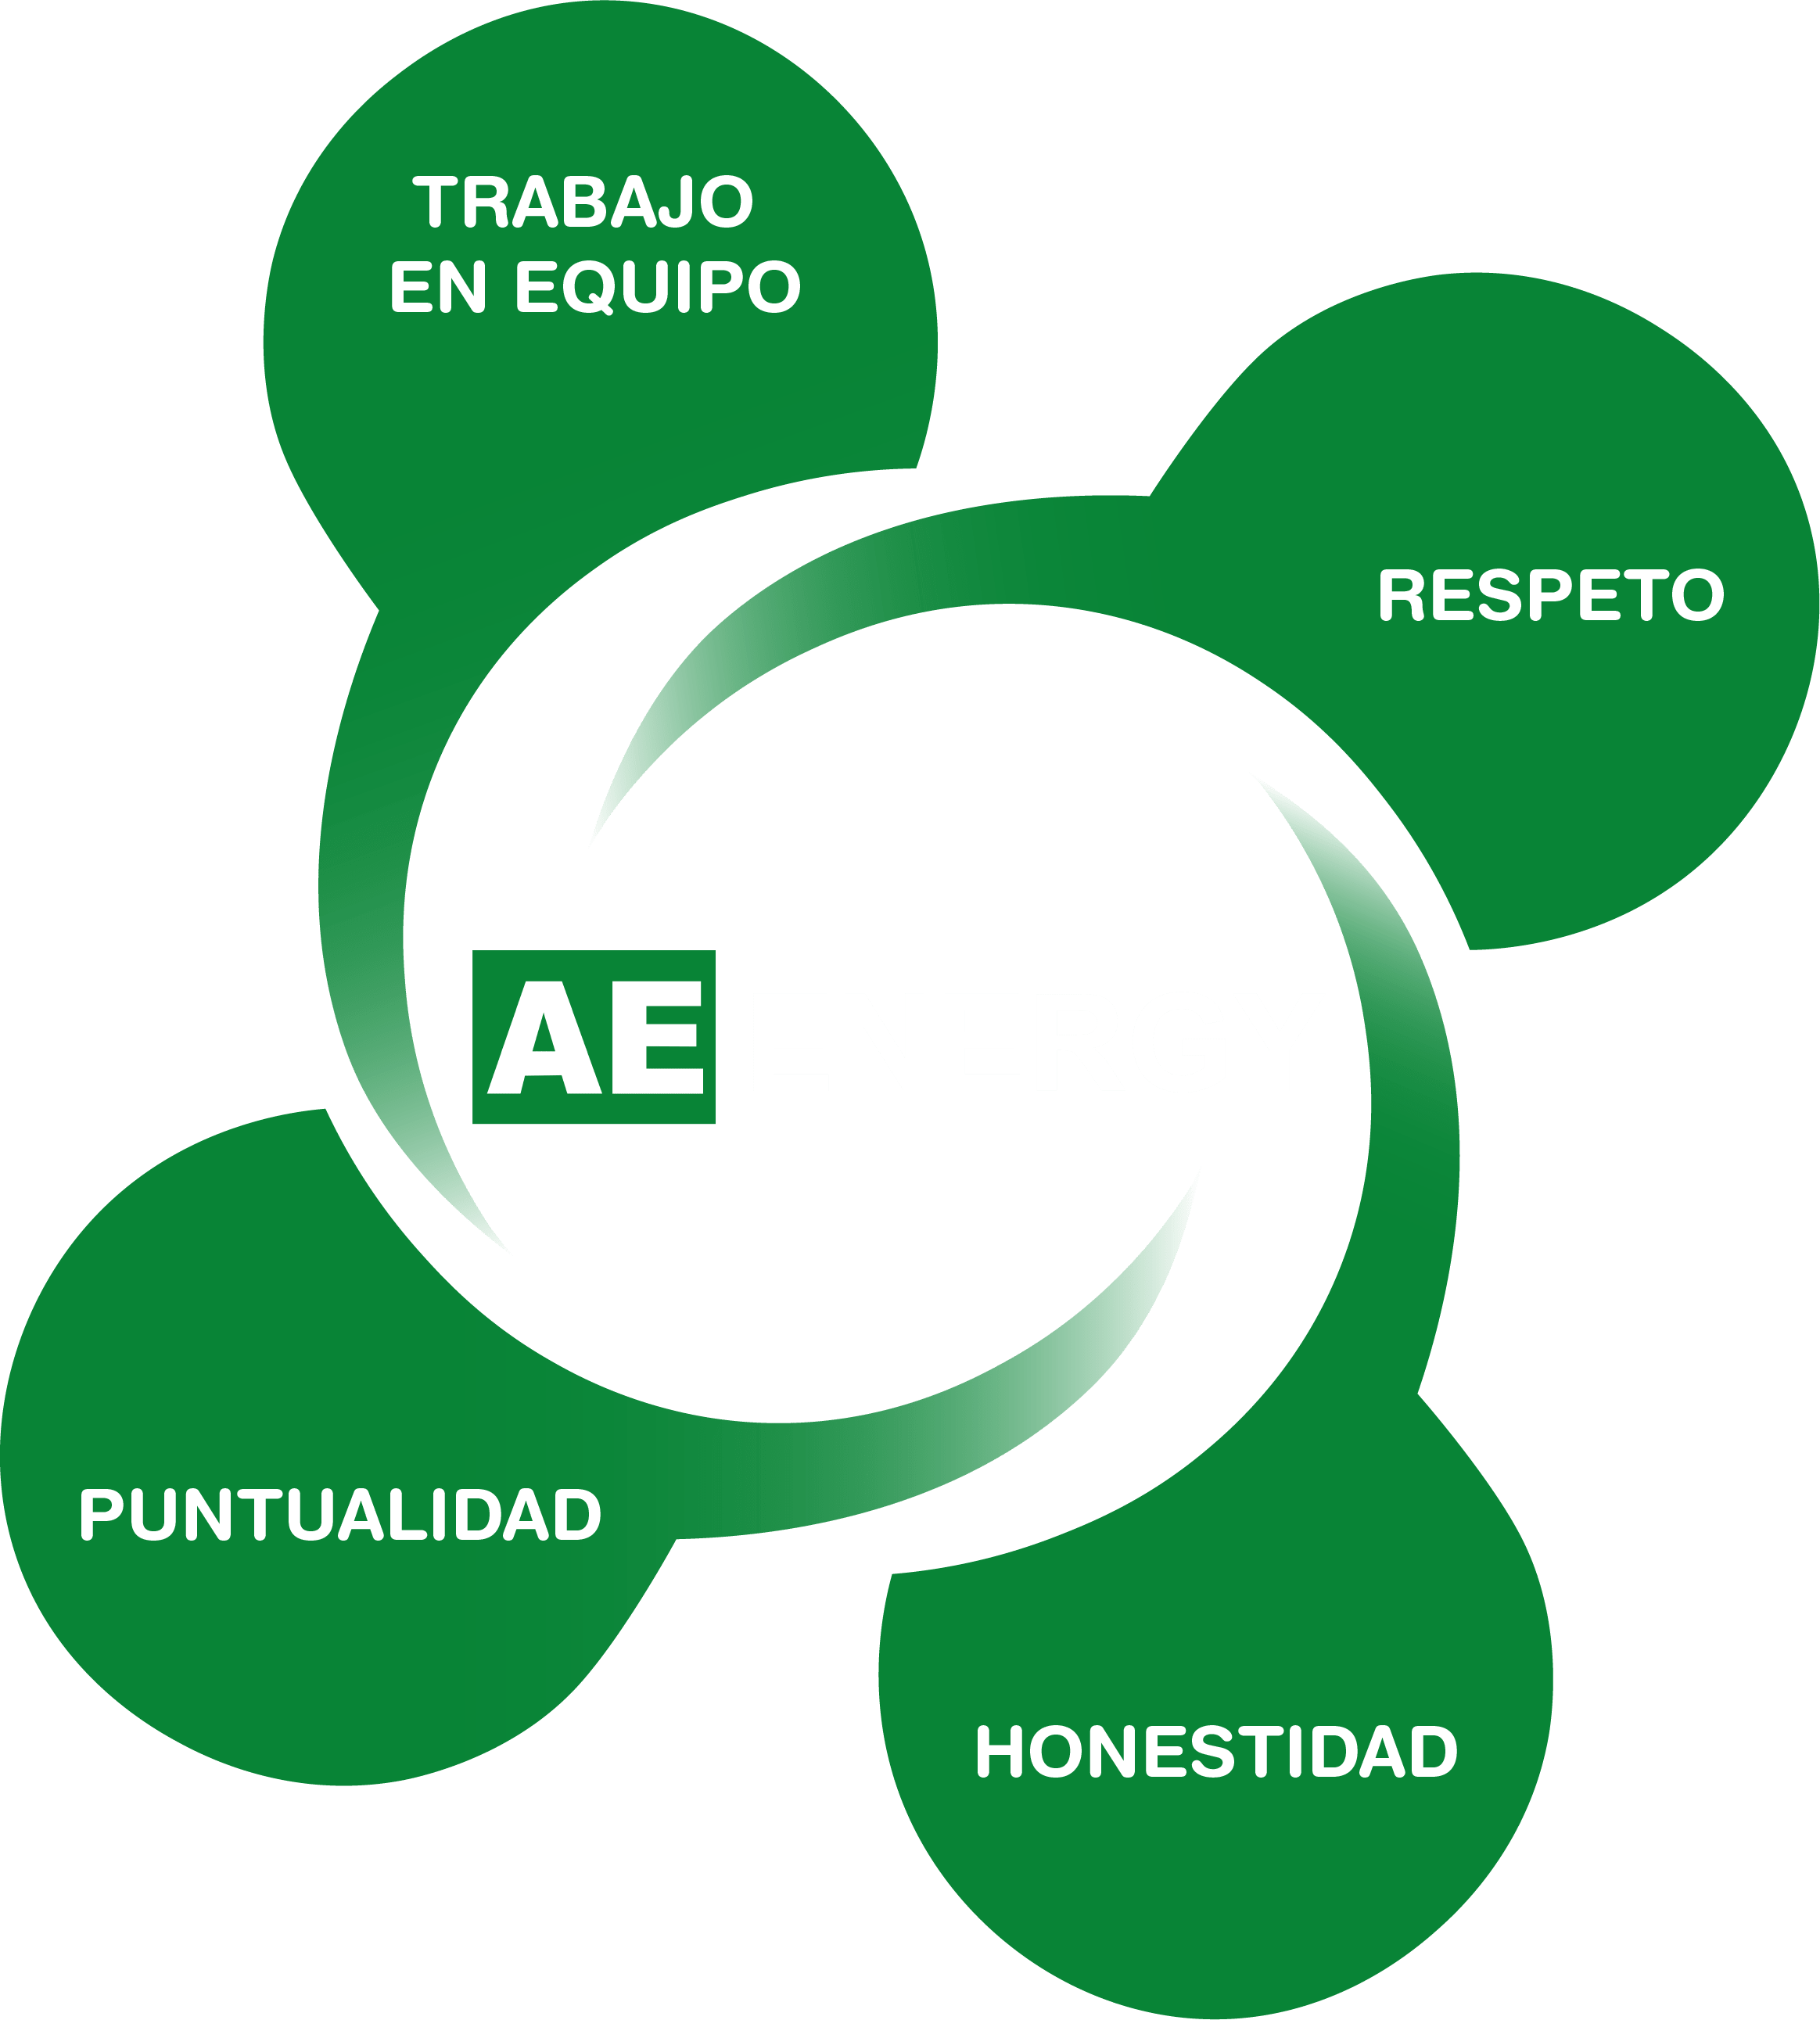 AE ENERGY somos especialistas en Ingenieria electrica